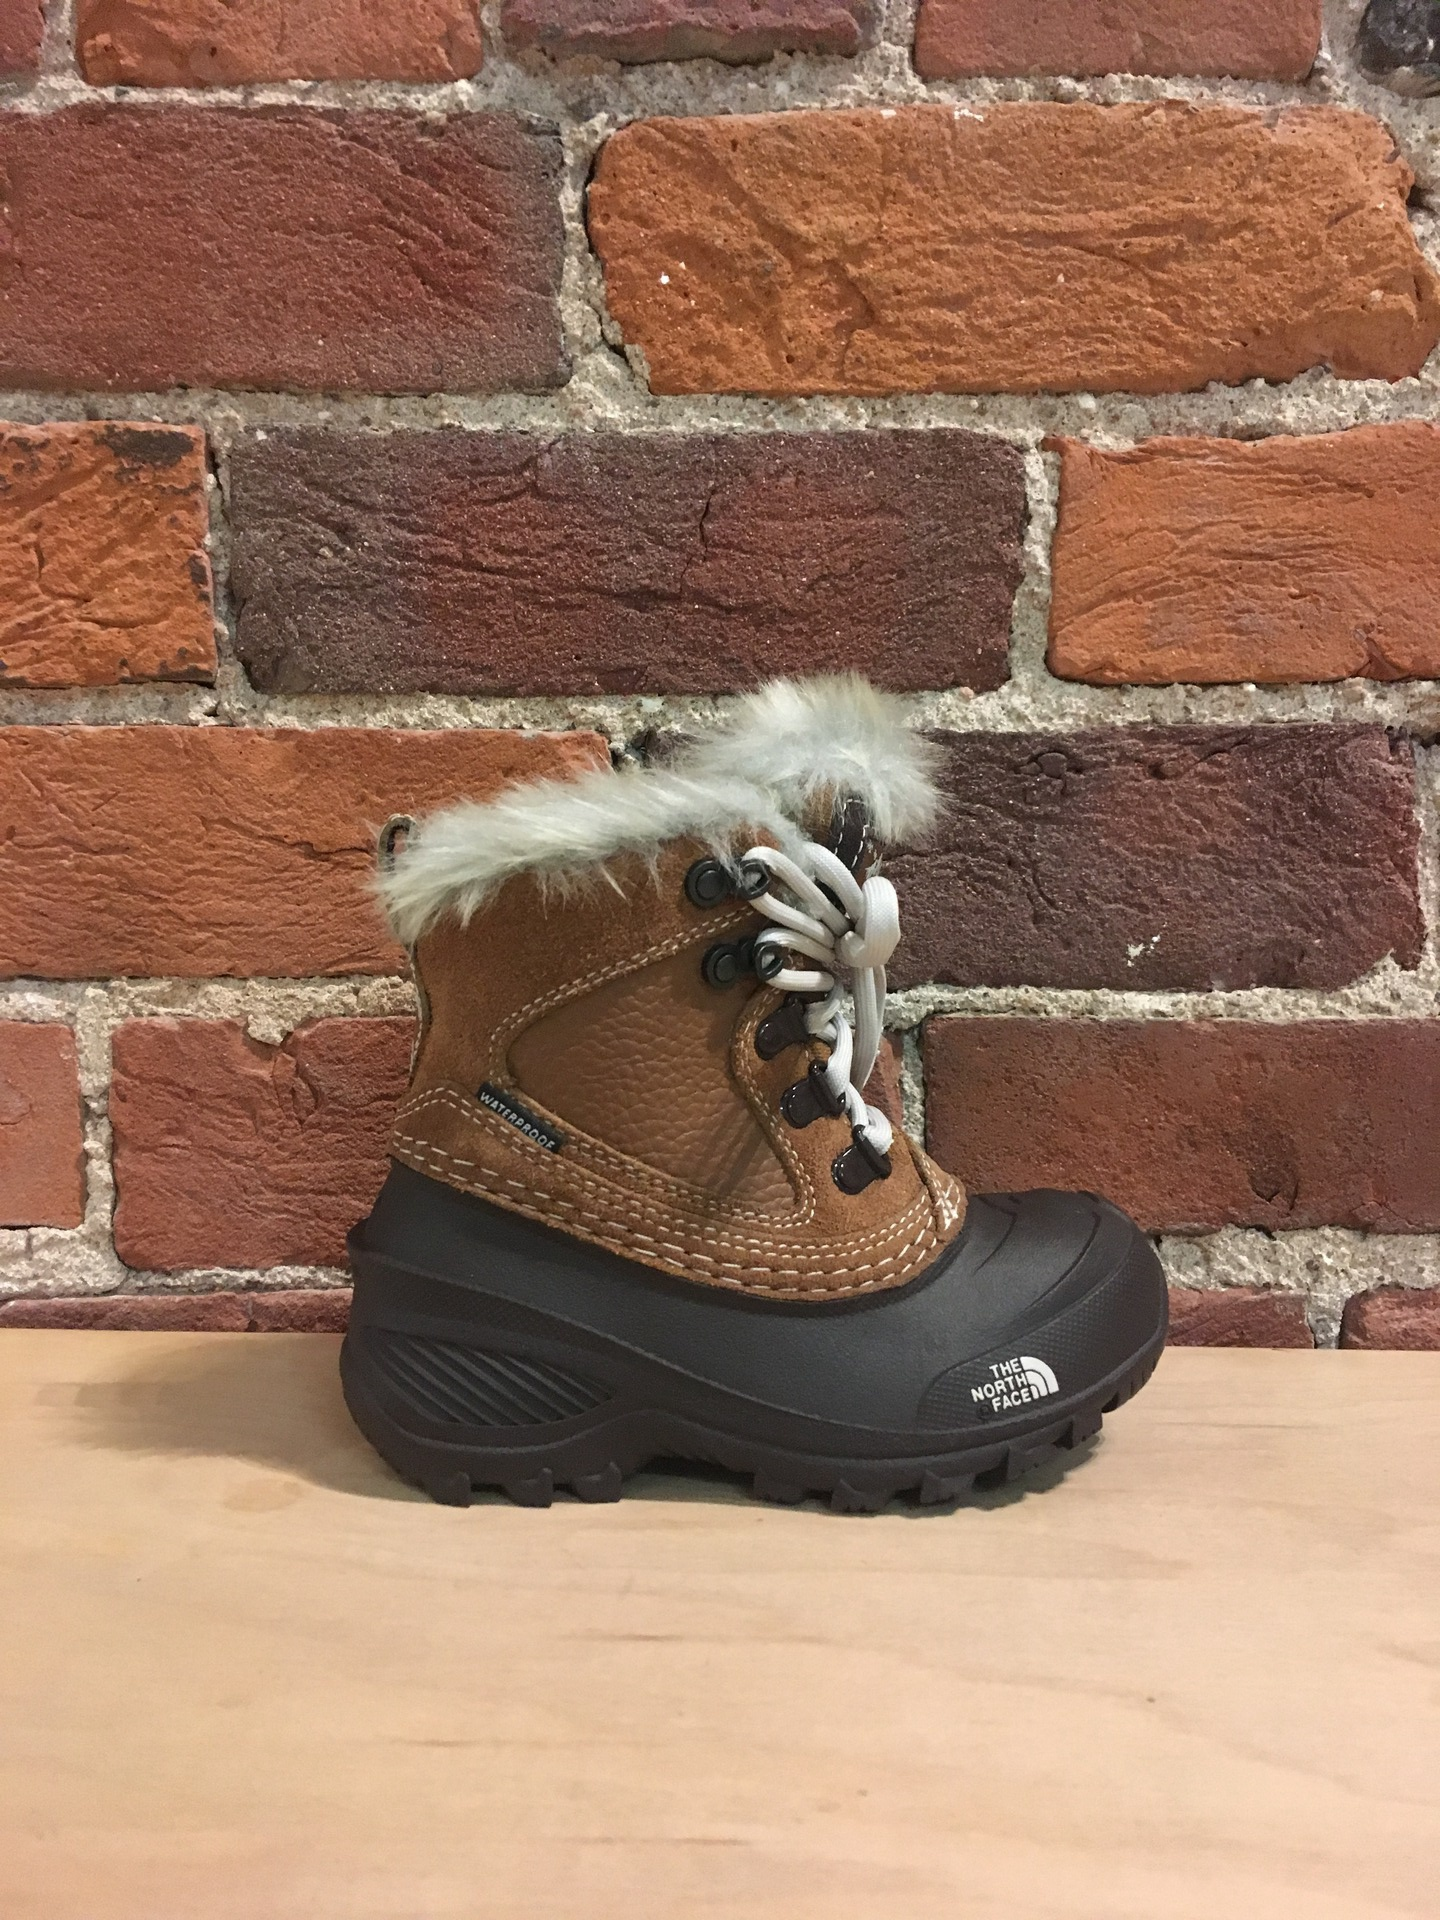 e63ab1dd8 THE NORTH FACE - YOUTH SHELLISTA EXTREME IN DASCHUND BROWN/MOONLIGHT IVORY